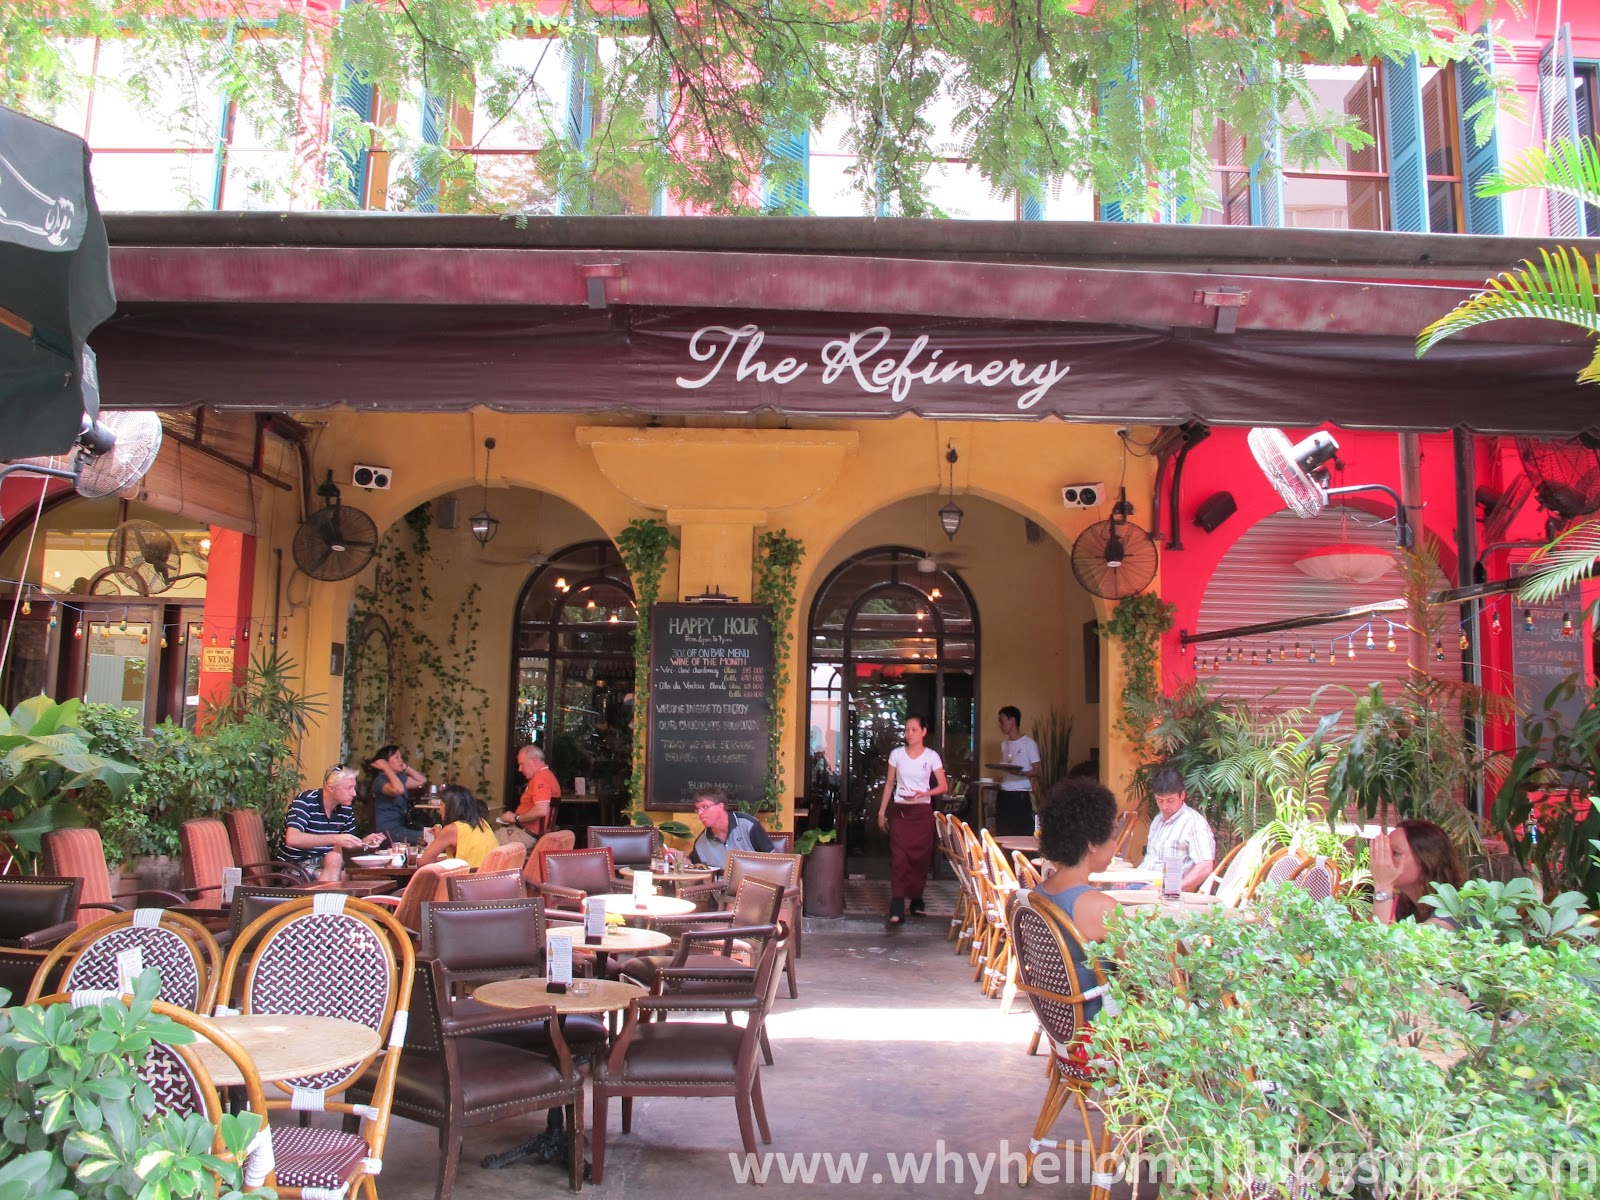 The Refinery Bar and Restaurant